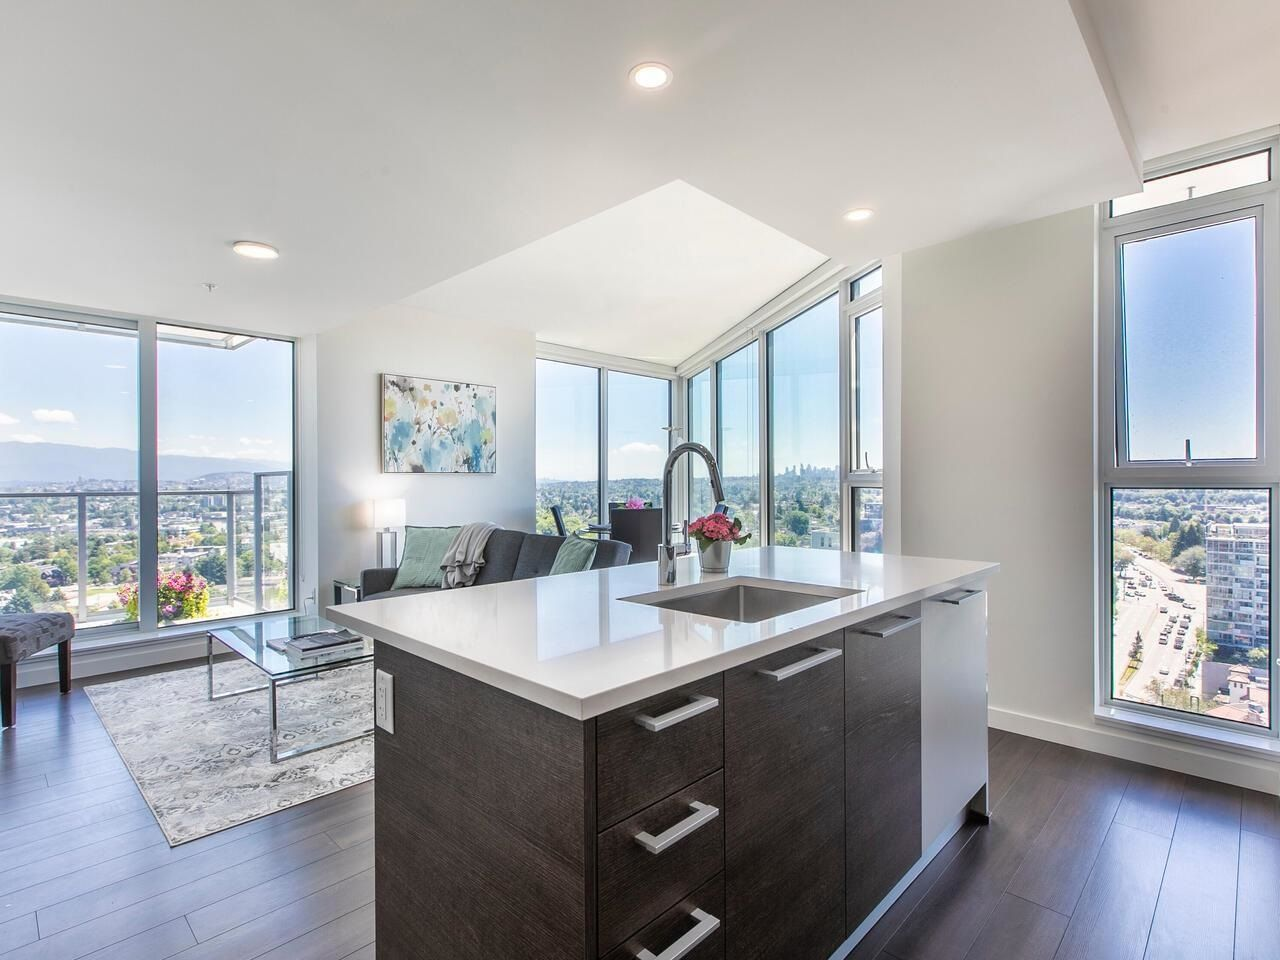 """Main Photo: 2205 285 E 10TH Avenue in Vancouver: Mount Pleasant VE Condo for sale in """"The Independent"""" (Vancouver East)  : MLS®# R2599683"""